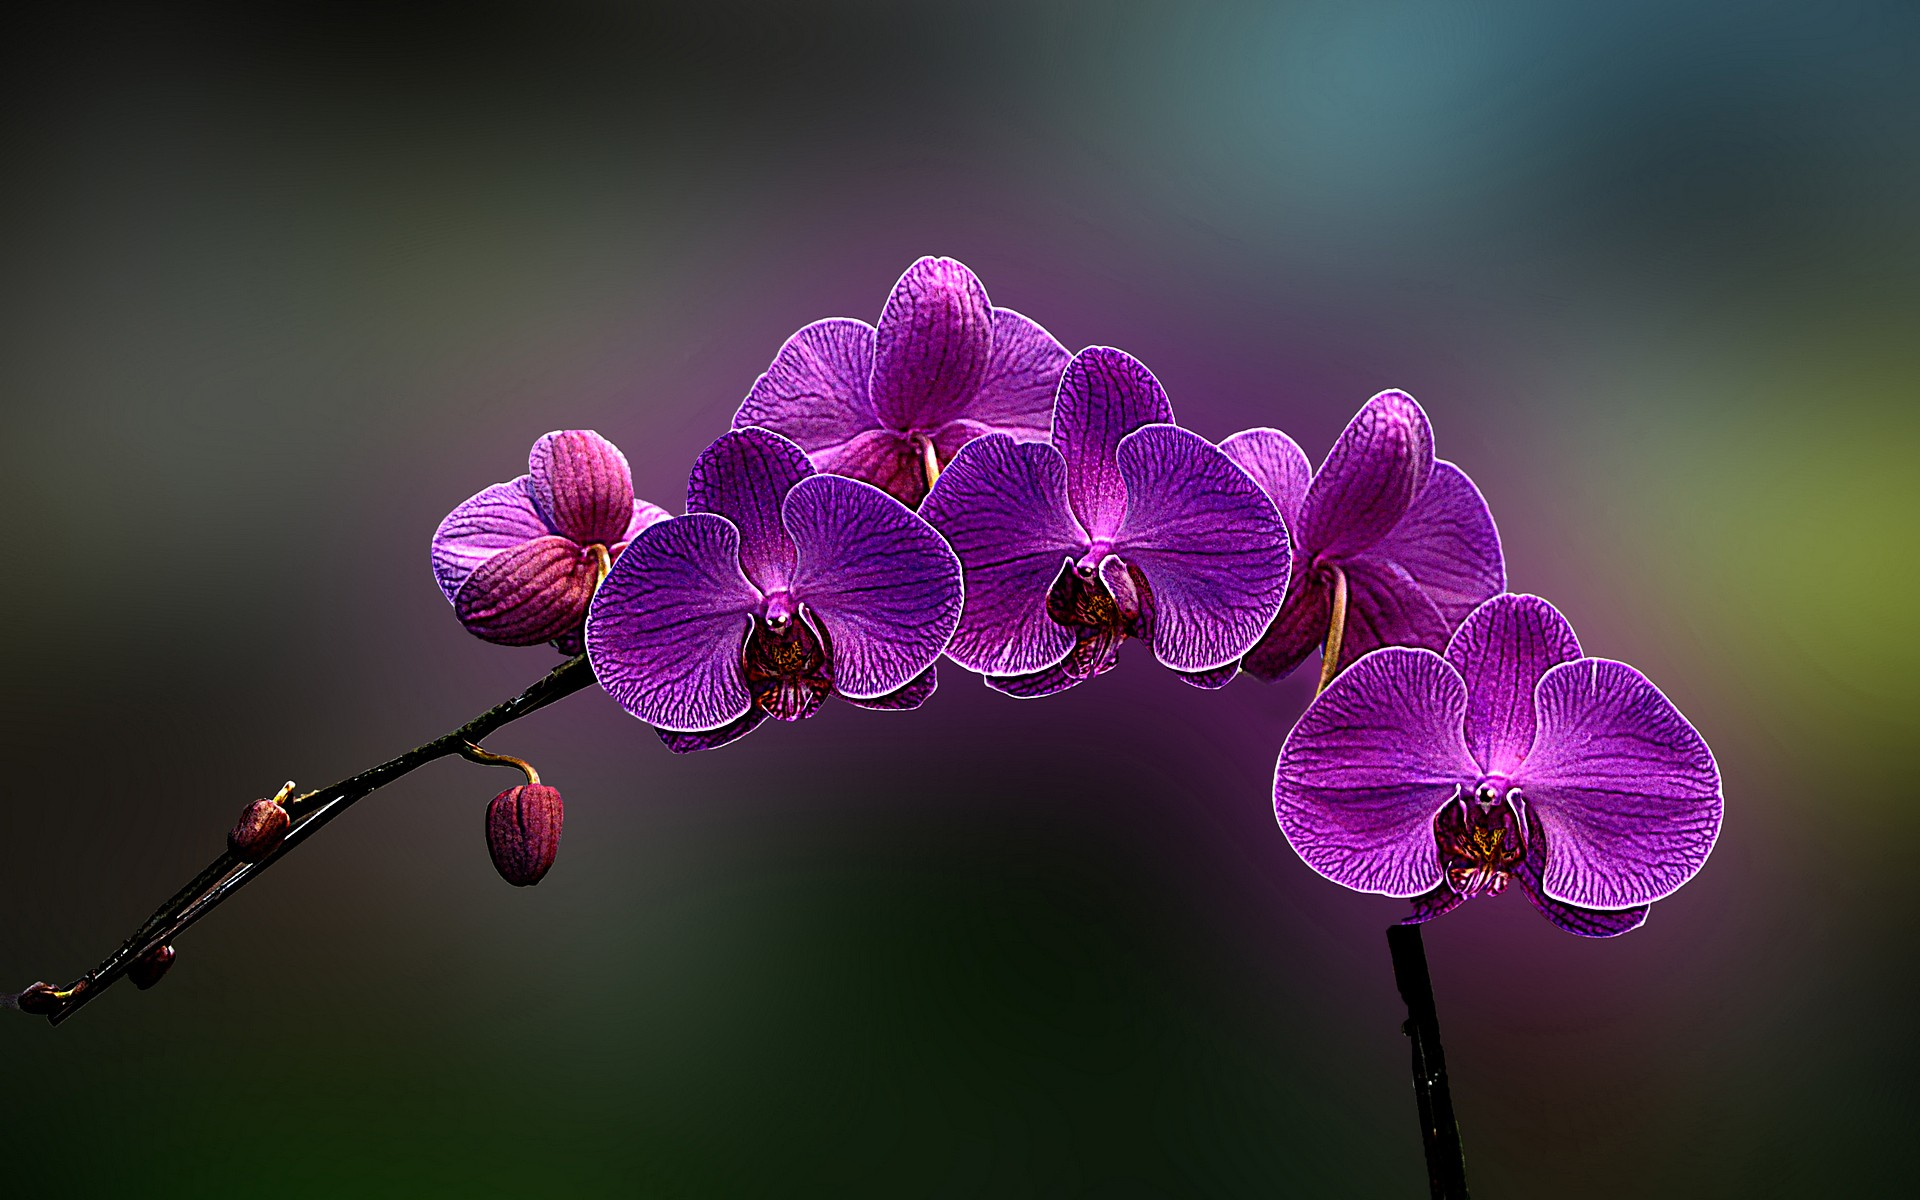 Flowers Orchids Wallpaper 1920x1200 Flowers Orchids Purple Flowers 1920x1200